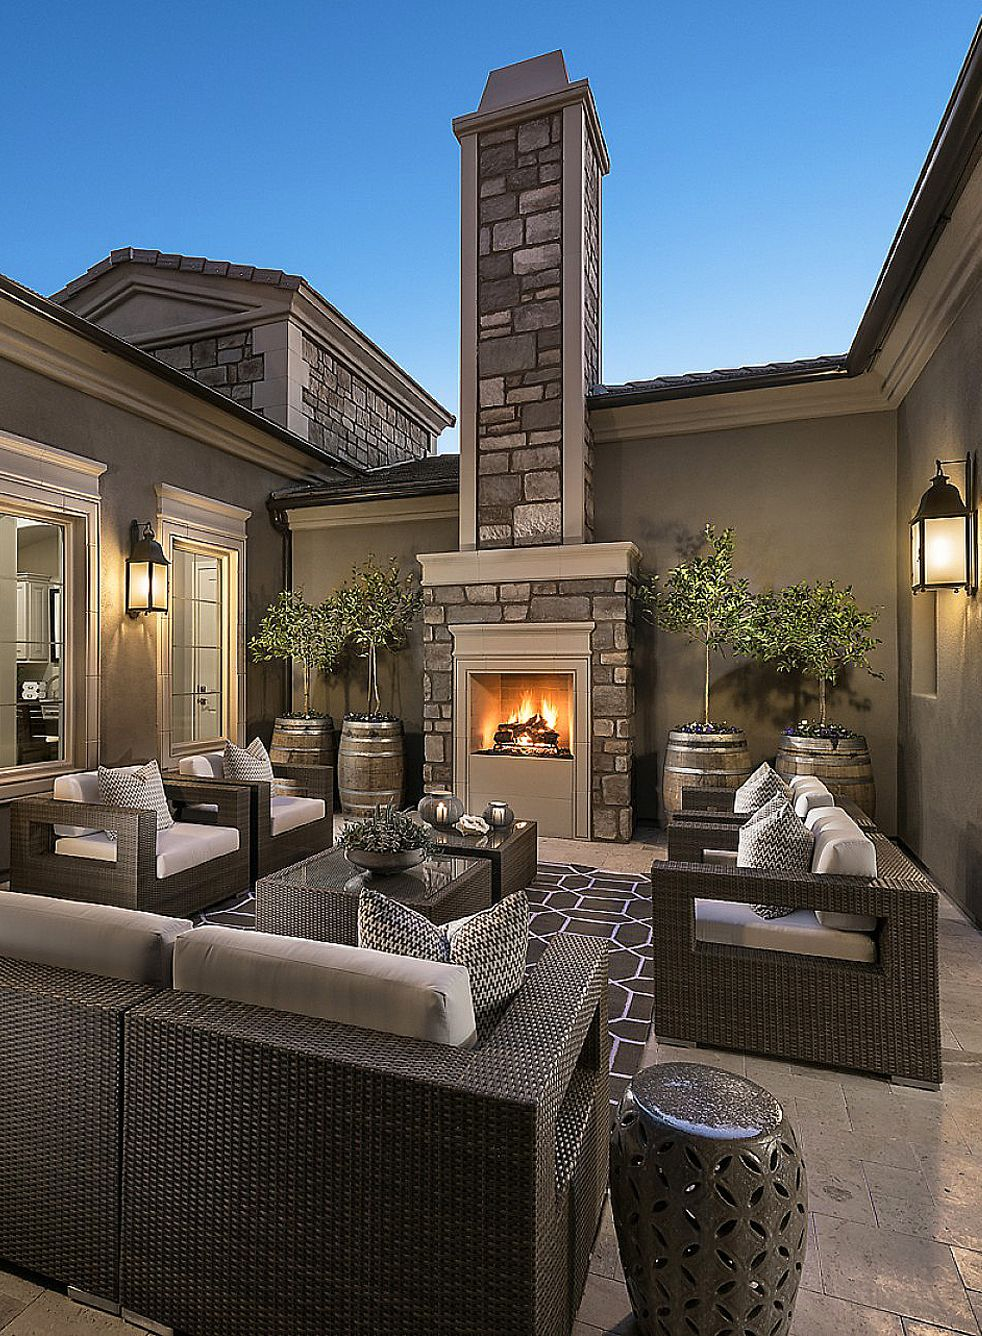 Beautiful Outdoor Living Space With Coronado Stone Fireplace Beautiful Outdoor Living Spaces Outdoor Rooms Outdoor Living Space Beautiful outdoor living spaces